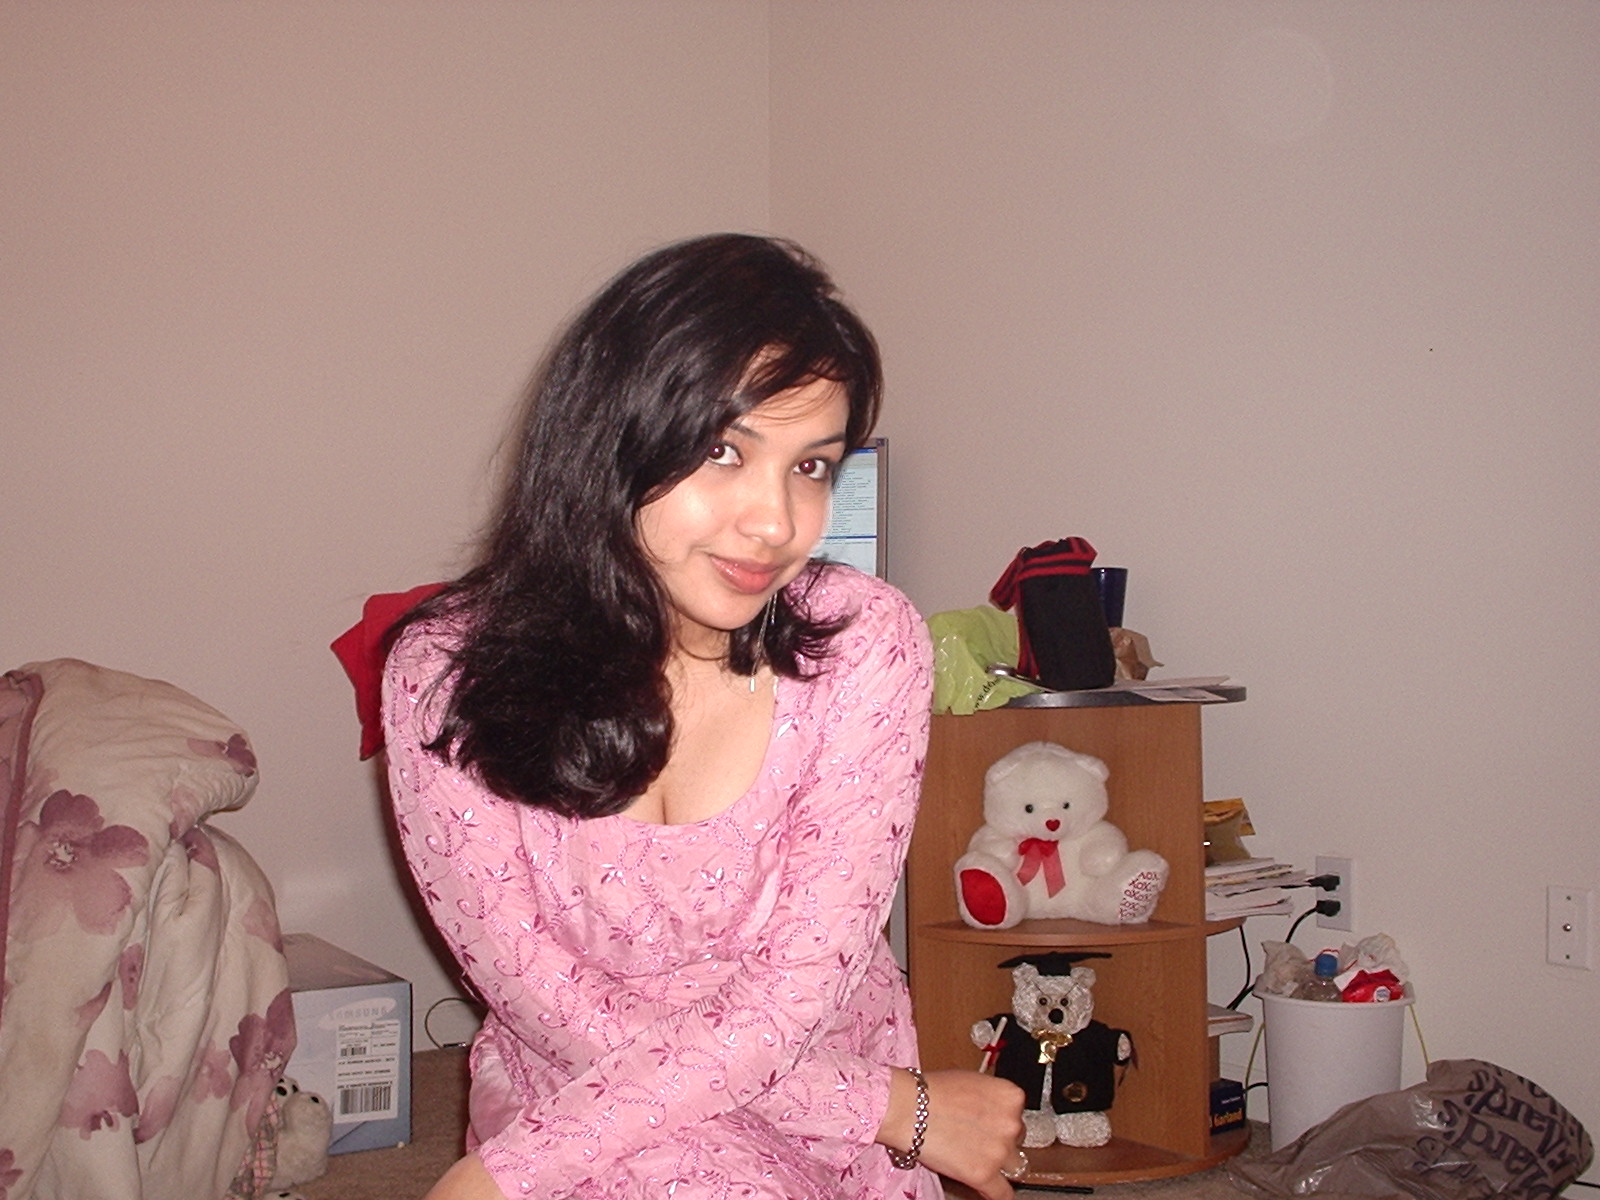 Hot Sexy Girls Pictures, Pakistani Girls Photos, China -1004